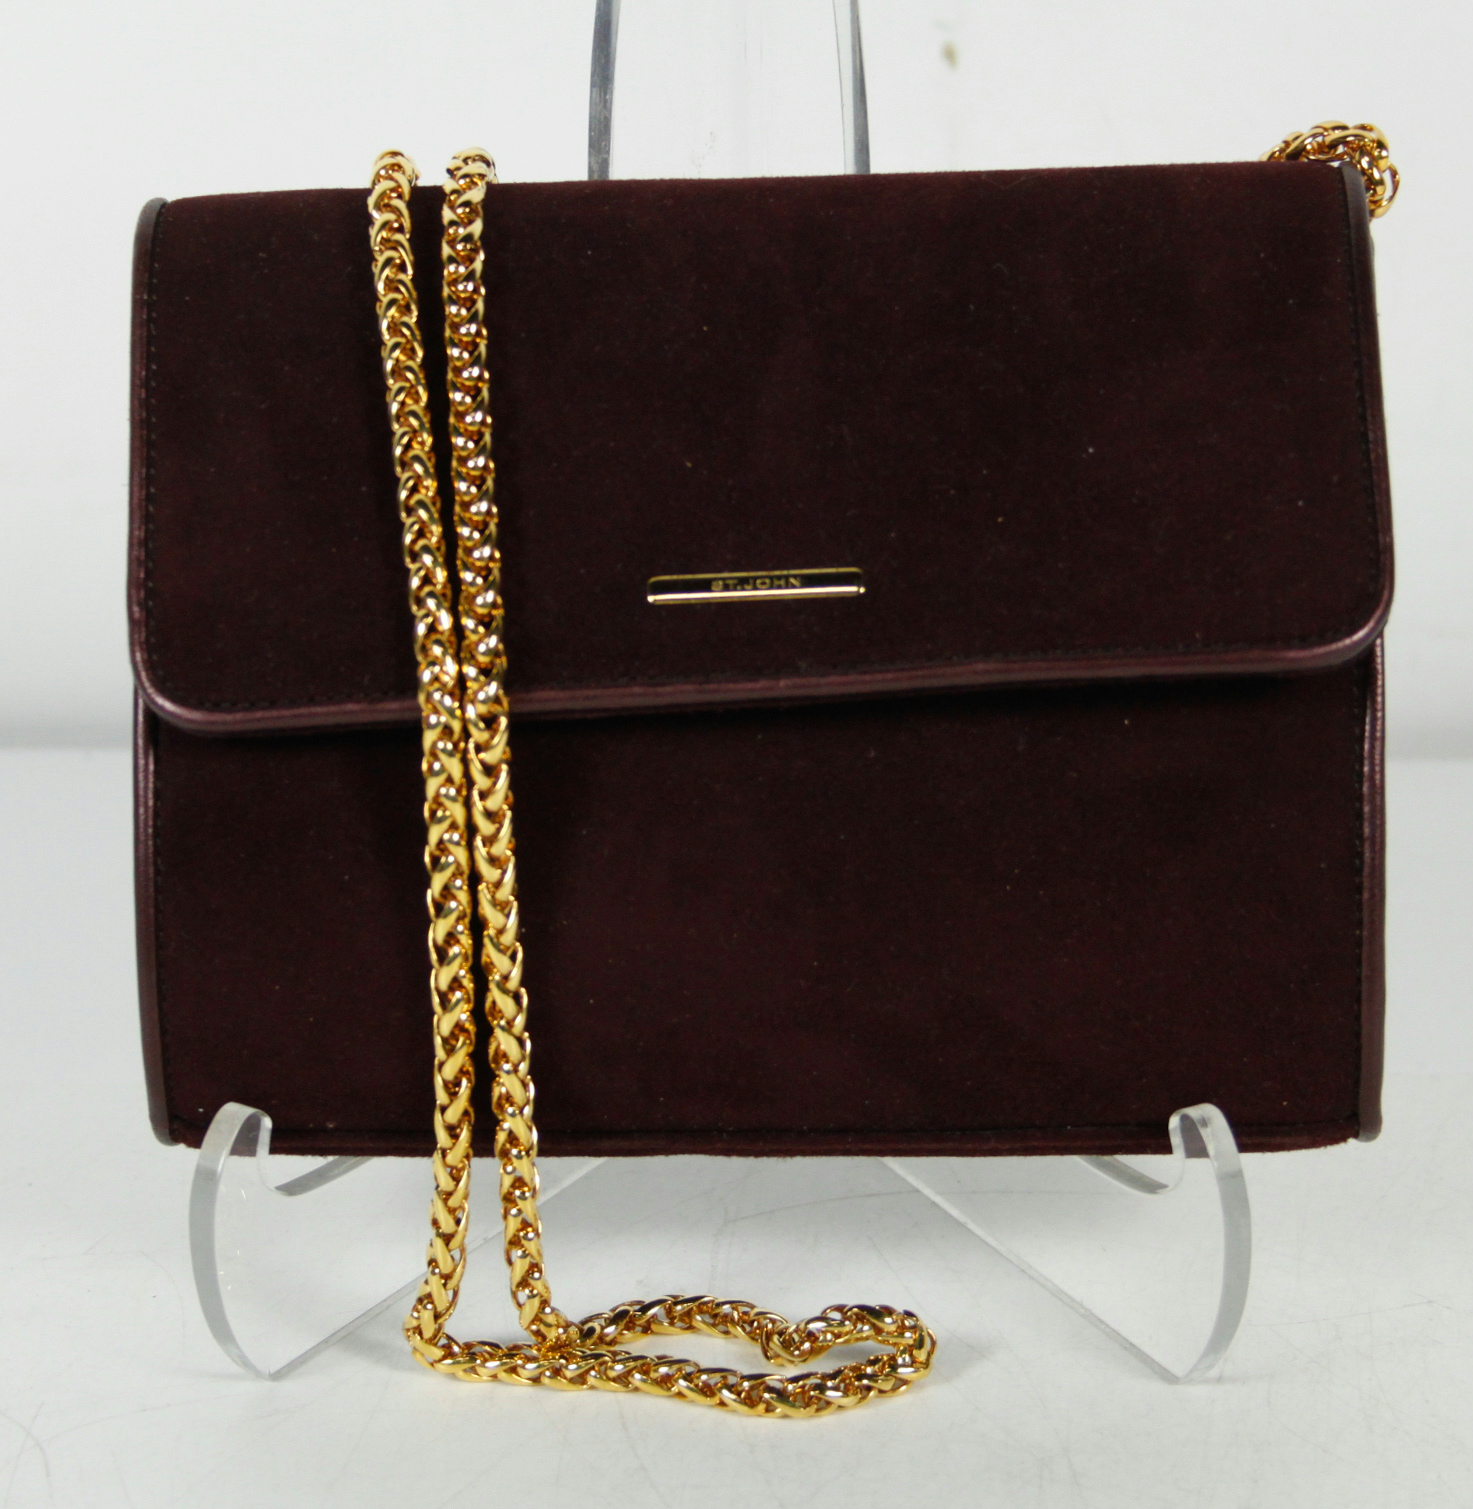 fba3b67399a9 Suede Crossbody Bag With Gold Chain | Stanford Center for ...